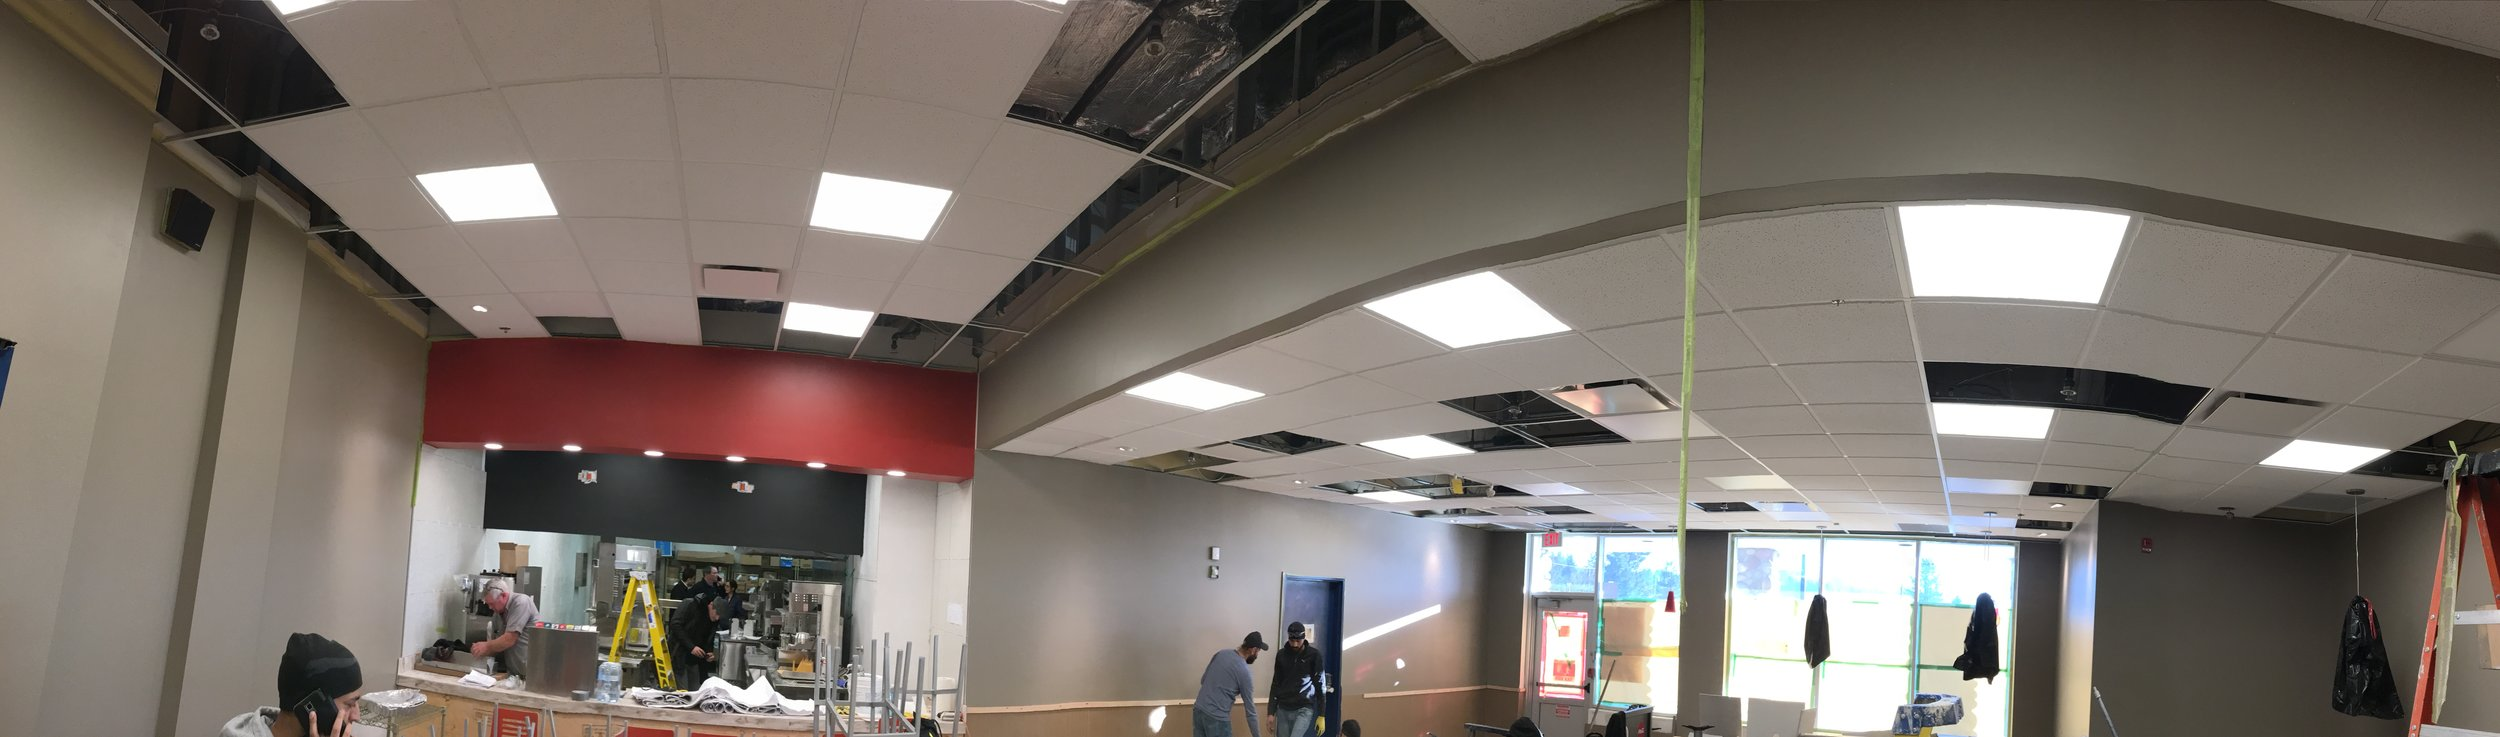 Burger King - Port Albernie  Located at 3355 Jahnston Rd Hwy 4, Port Alberni BC.  A renovation to an existing space located within a Wallmart.